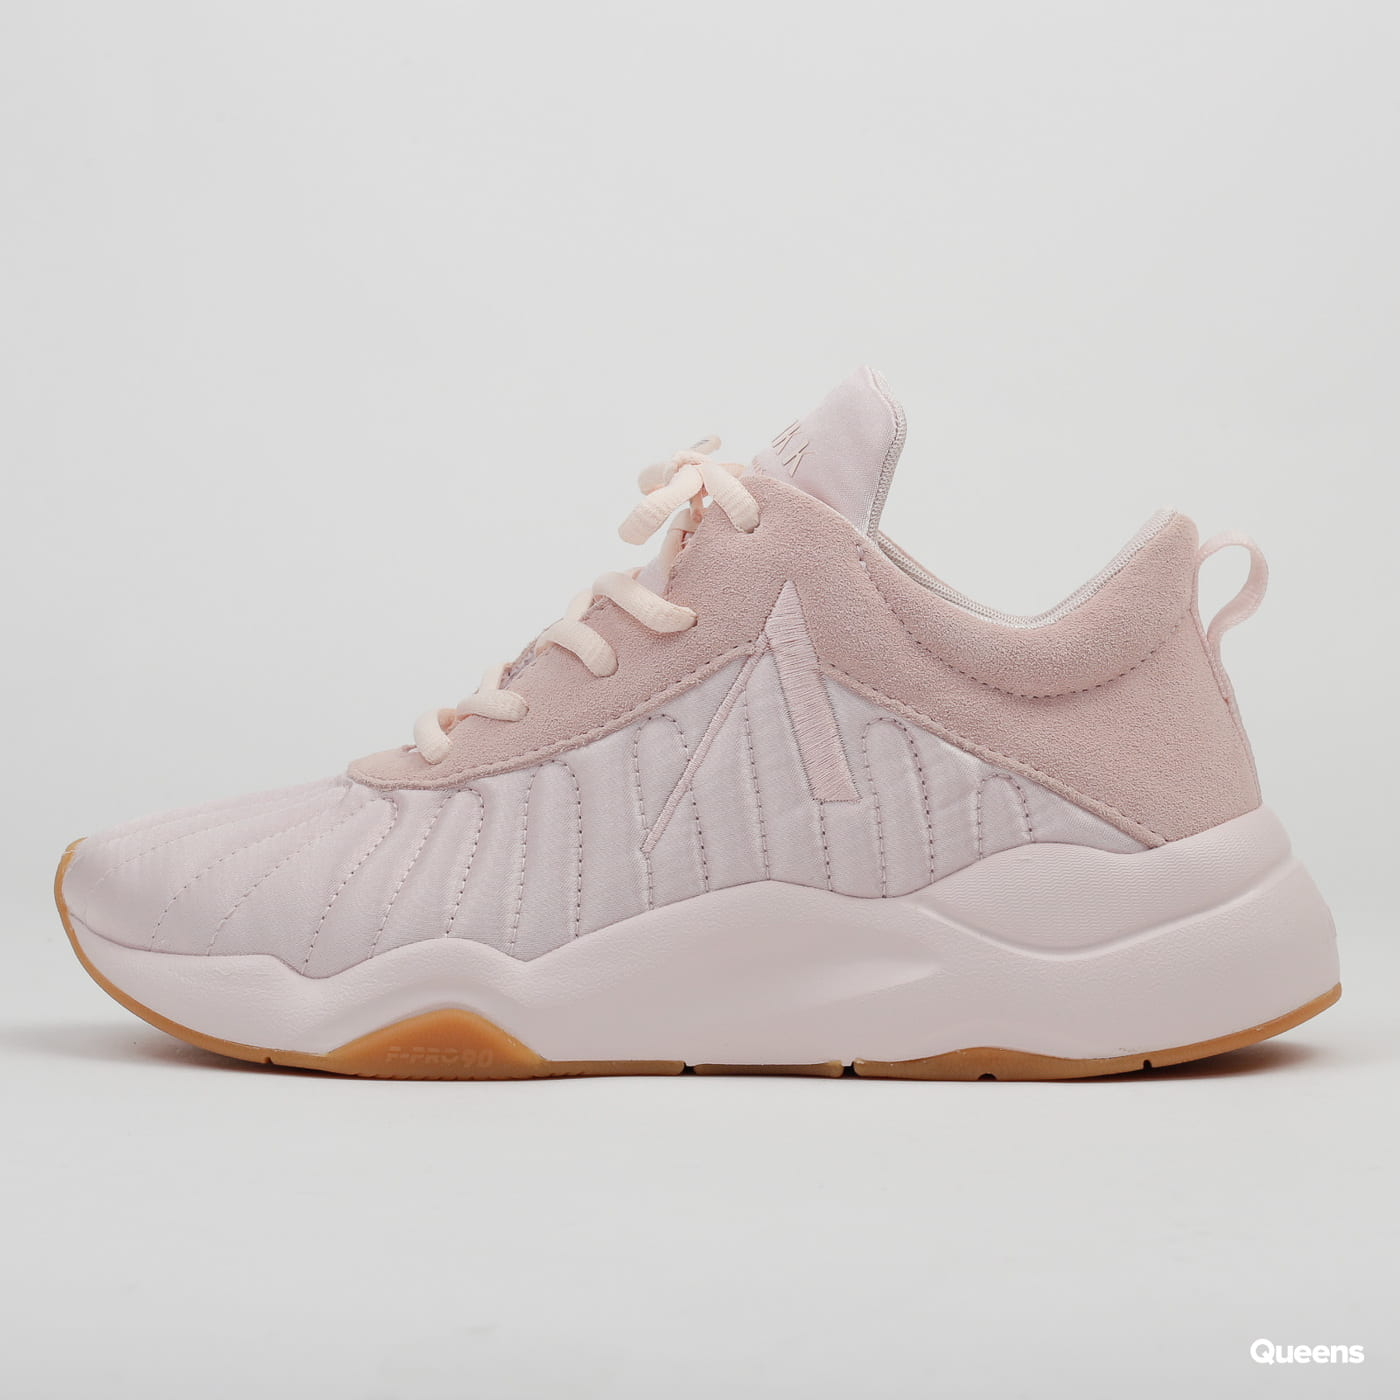 ARKK Vyxsas Satin F-Pro 90 blush light gum